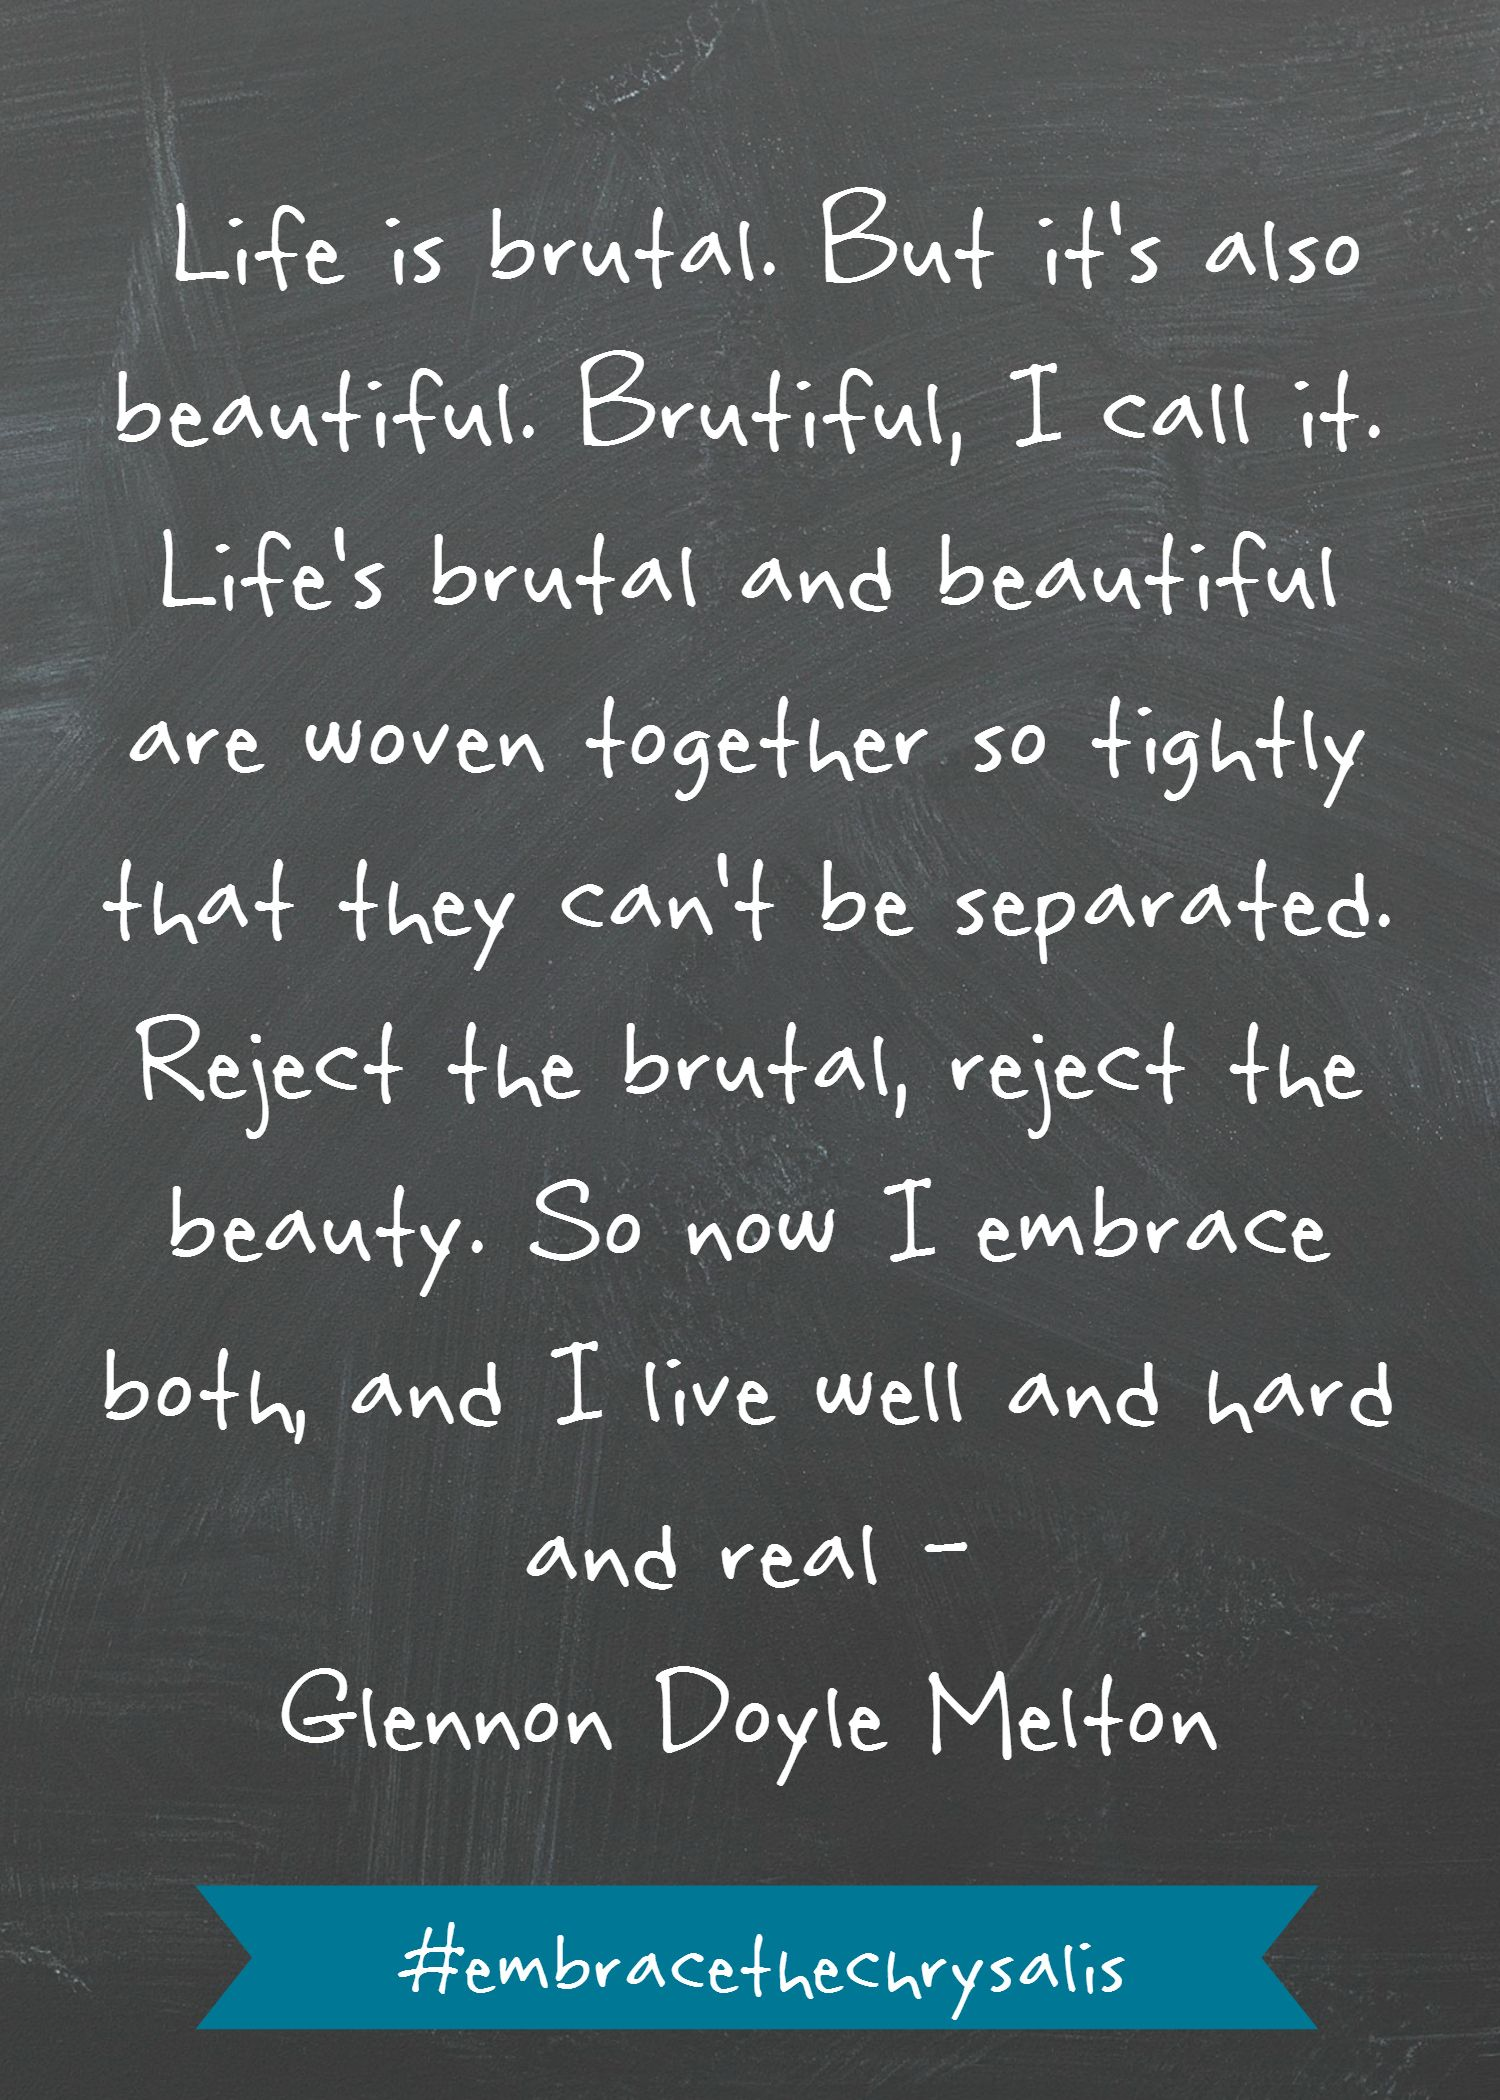 Brutal Quotes : brutal, quotes, Brutiful, Glennon, Doyle, Melton, Quotes,, Quotes